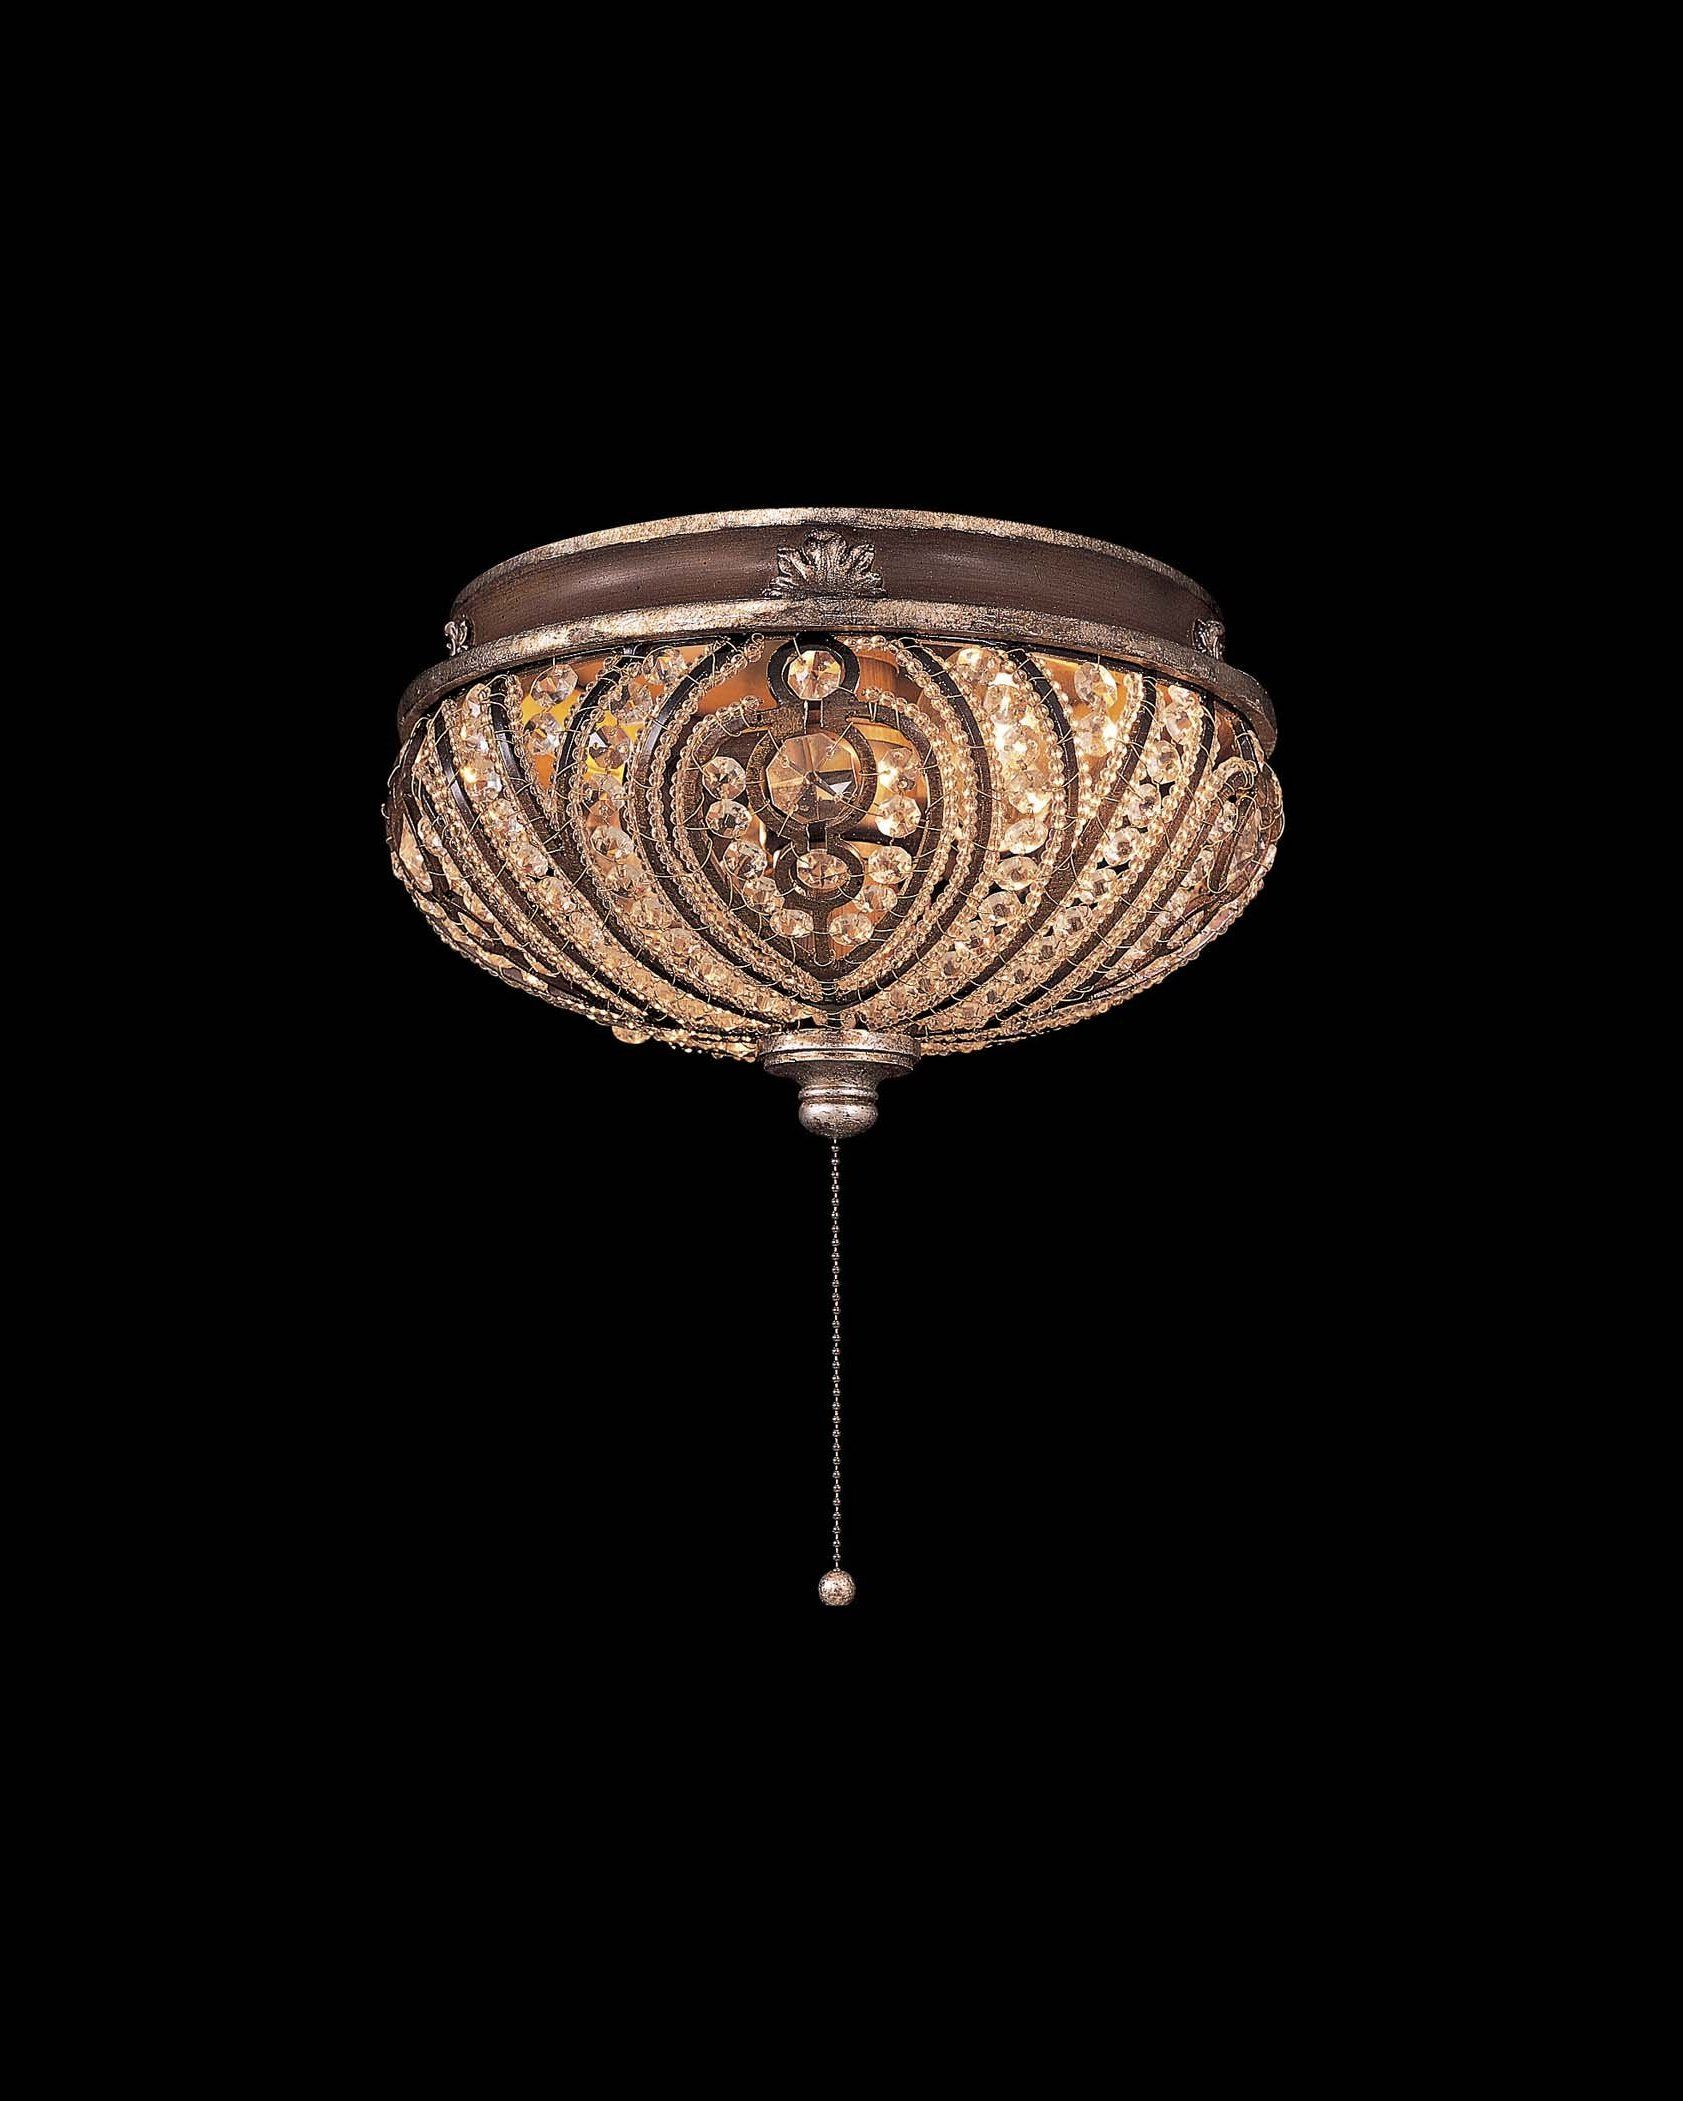 portrayal of pull chain ceiling light fixture for interesting